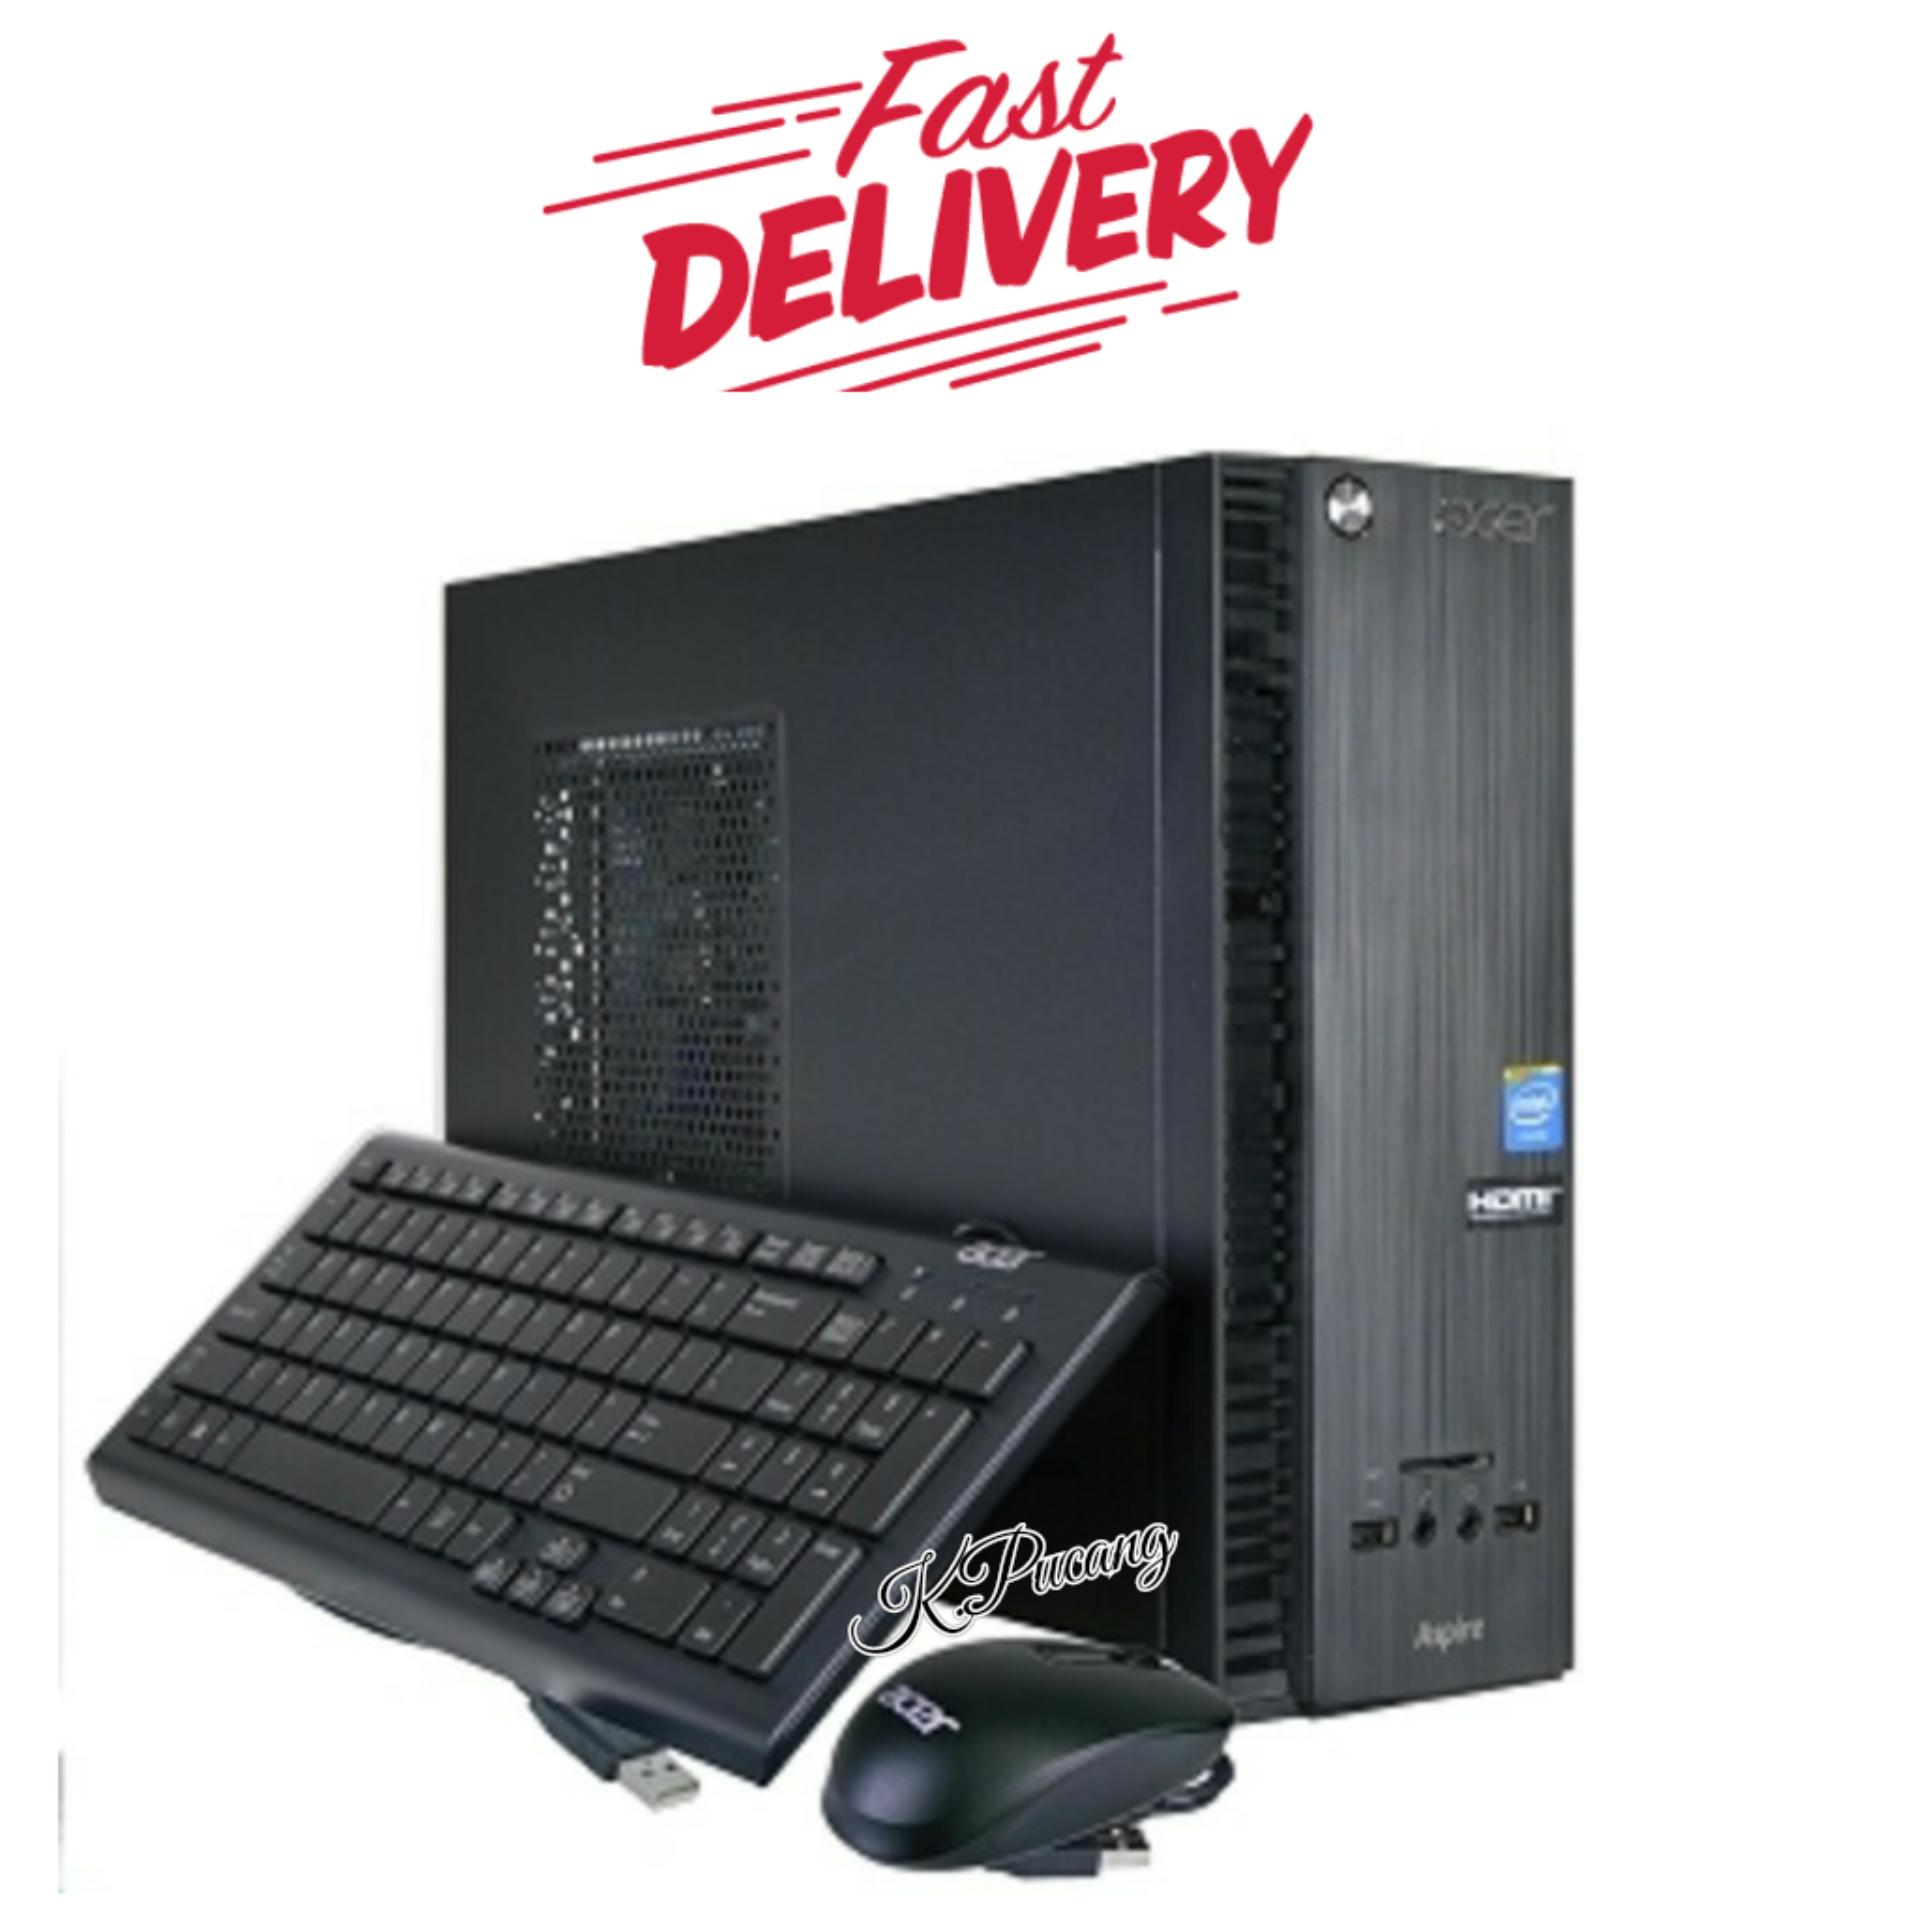 PC Built Up Acer Aspire XC-704G | Intel Celeron CPU N3050 | 4GB Ram | 500GB Hdd | Windows 10 Home | Black | FREE Asuransi Paket